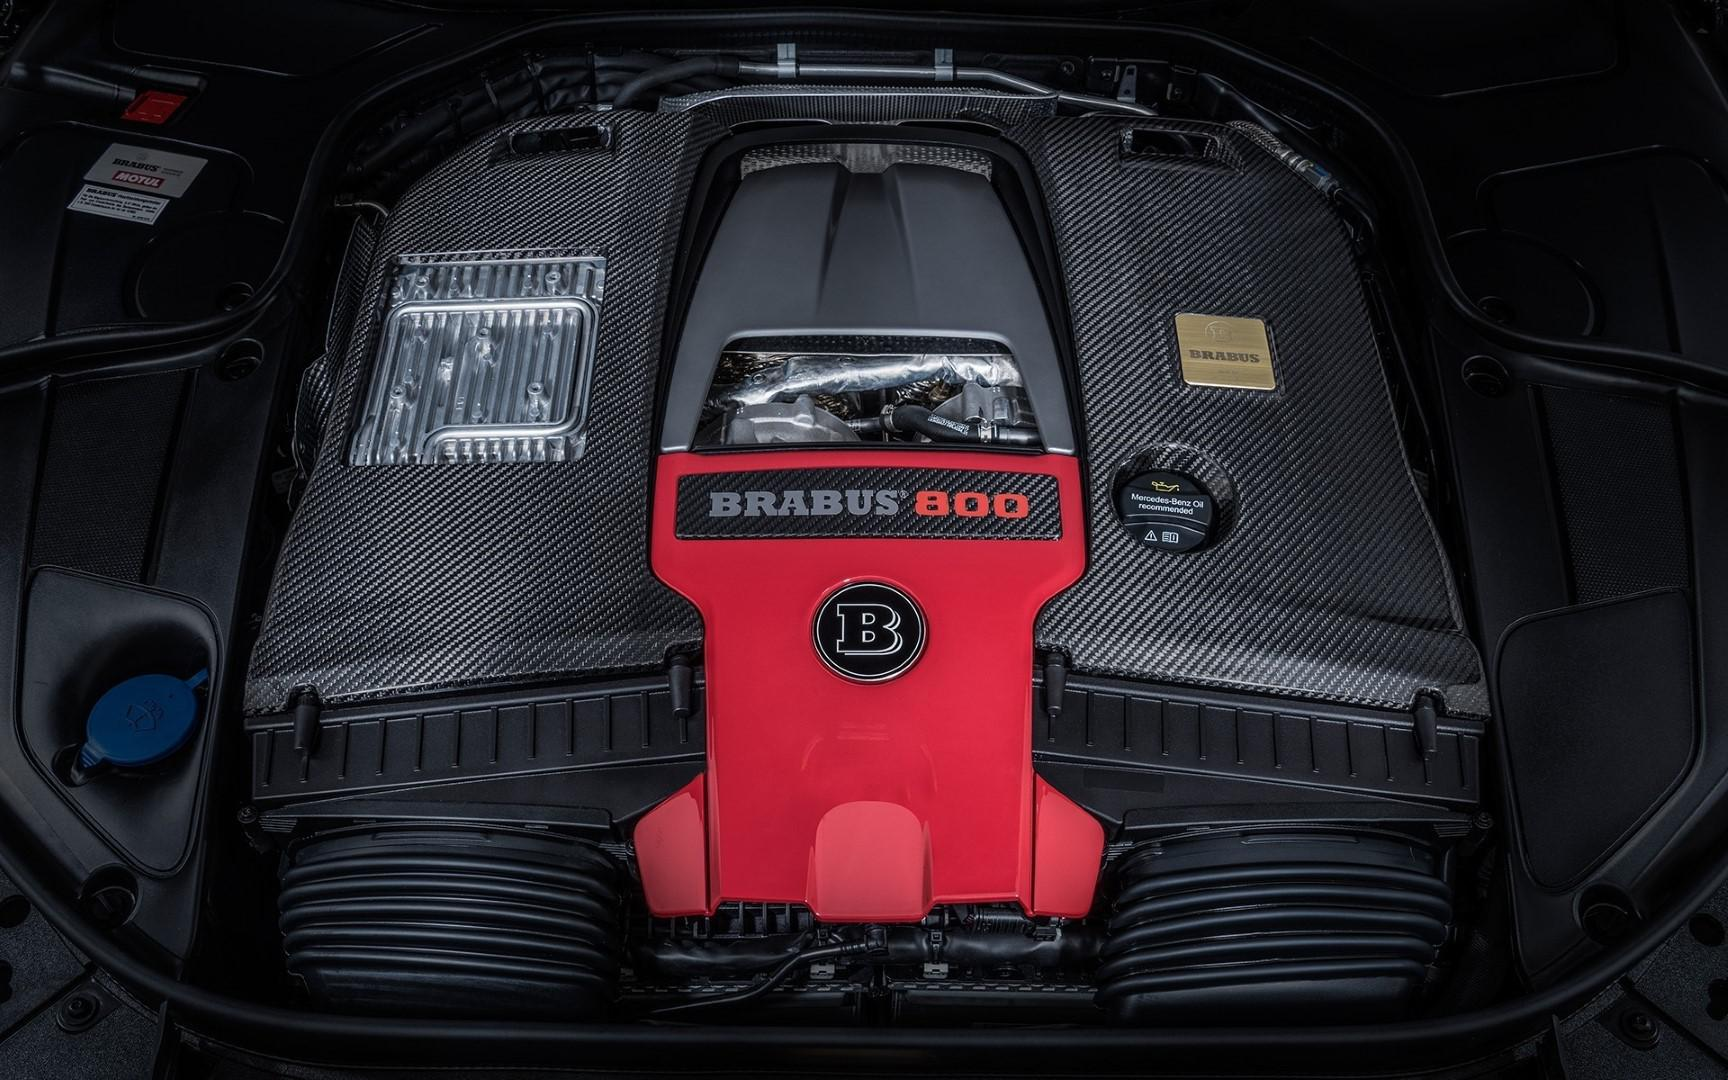 brabus-800-performance-mercedes-benz-s63-4matic-coupe-803-8.jpg